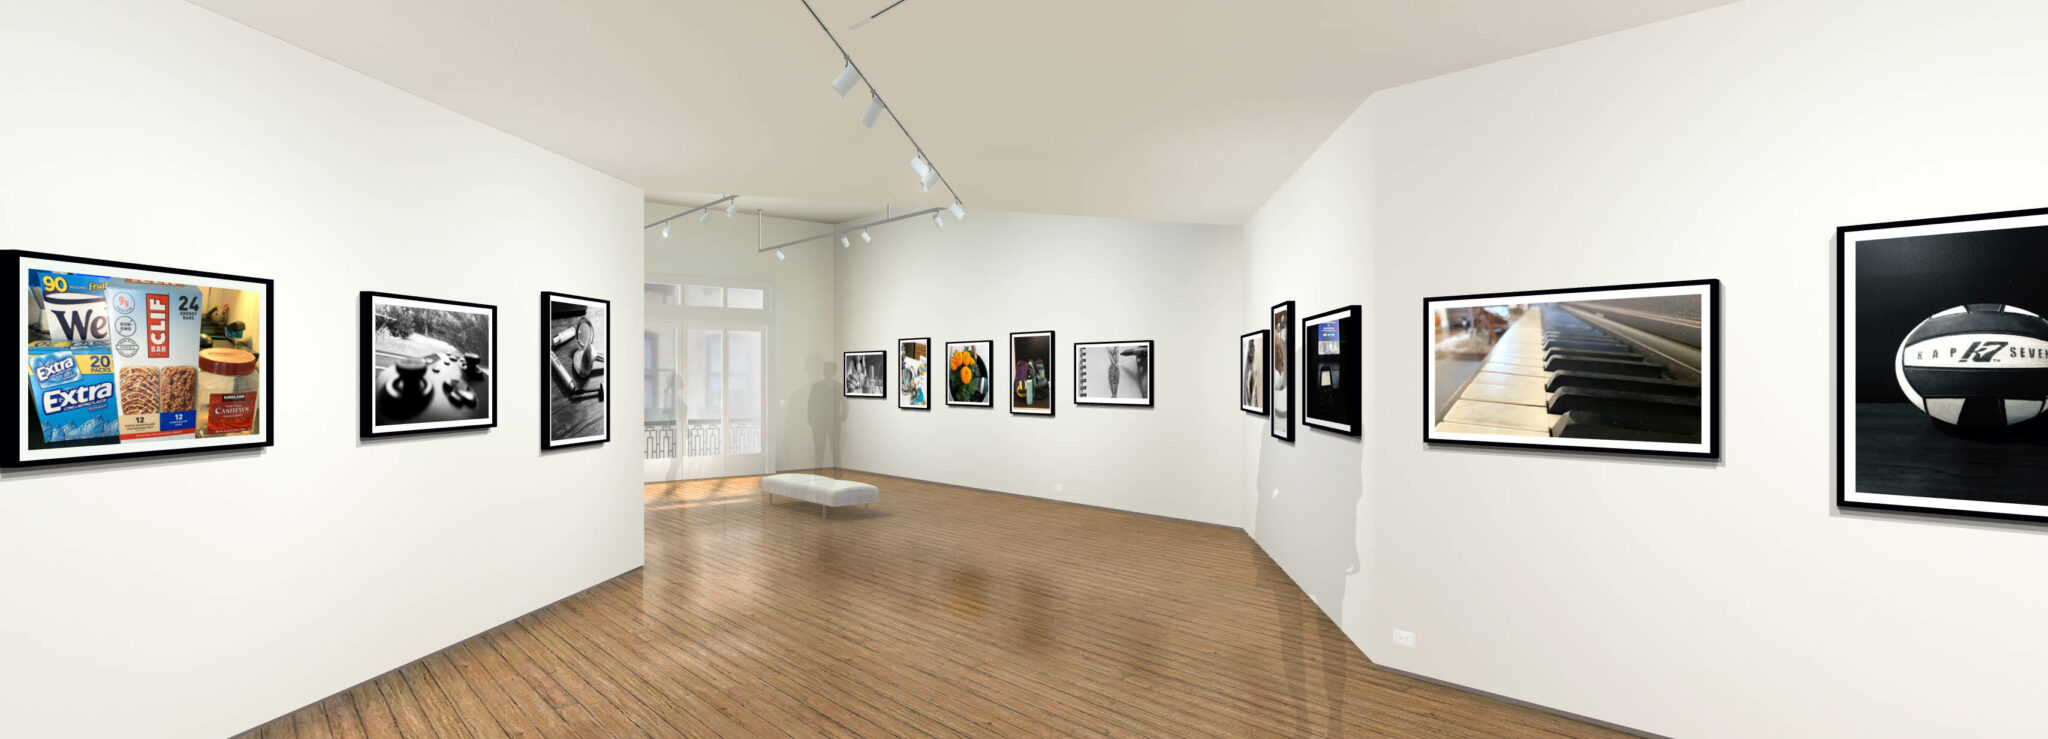 Pictures in virtual gallery